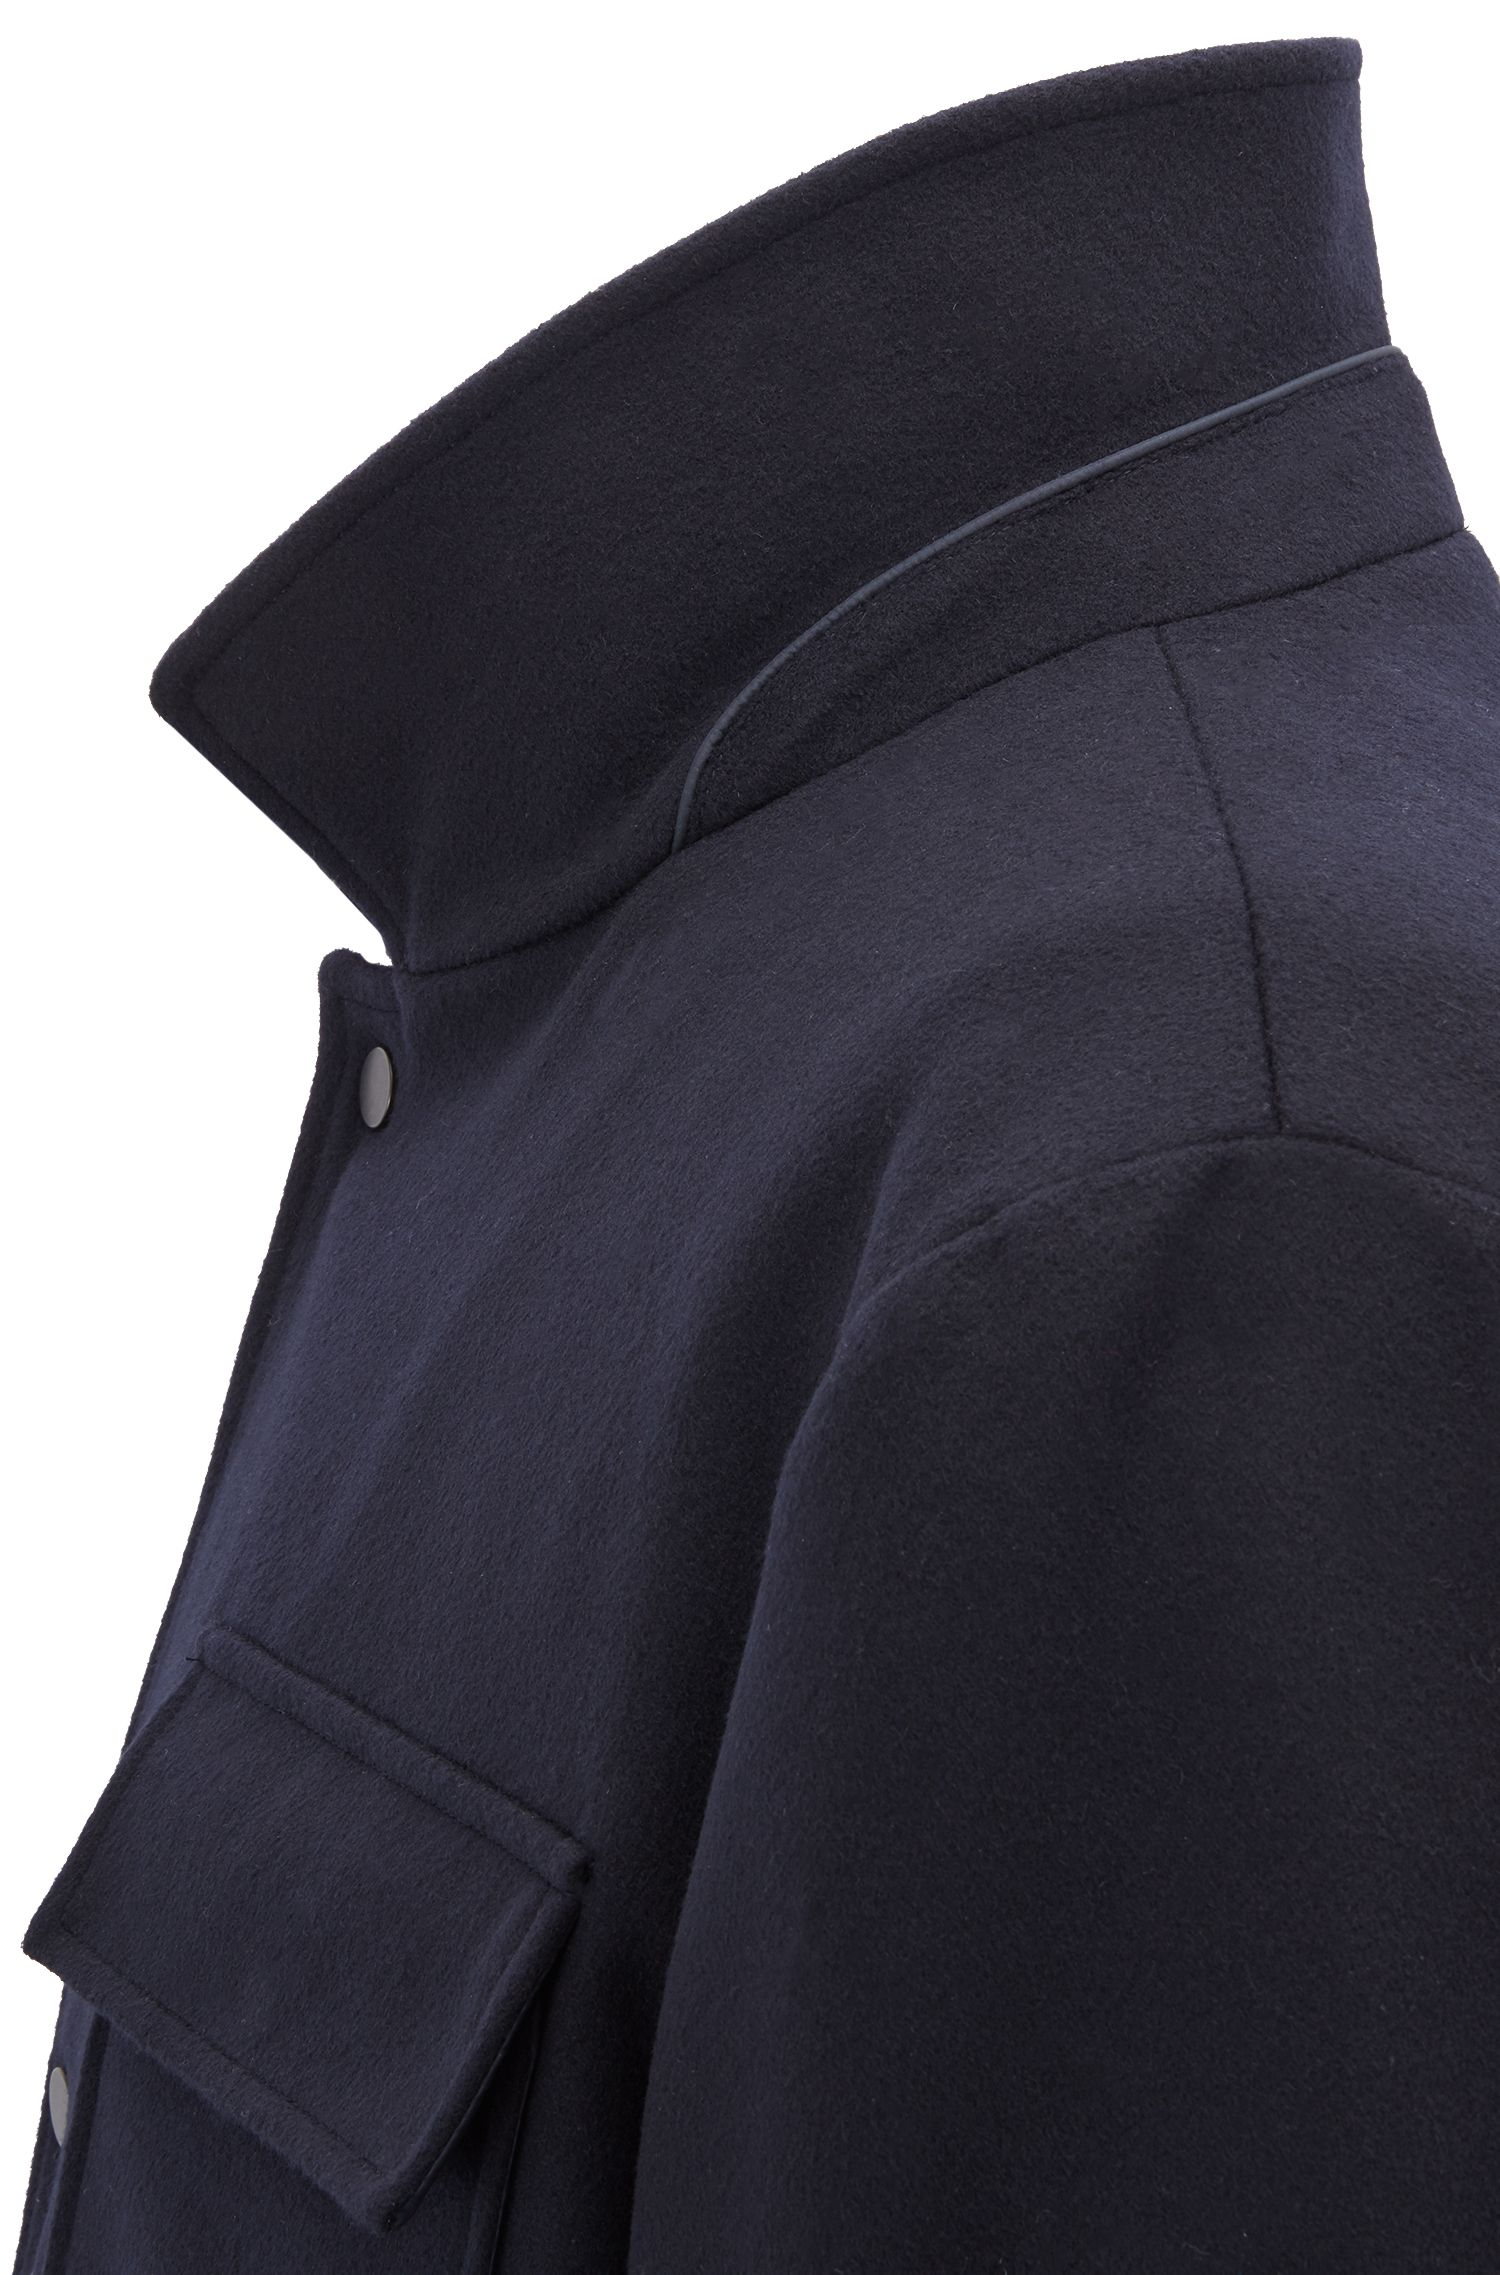 Three-in-one water-repellent jacket with detachable vest